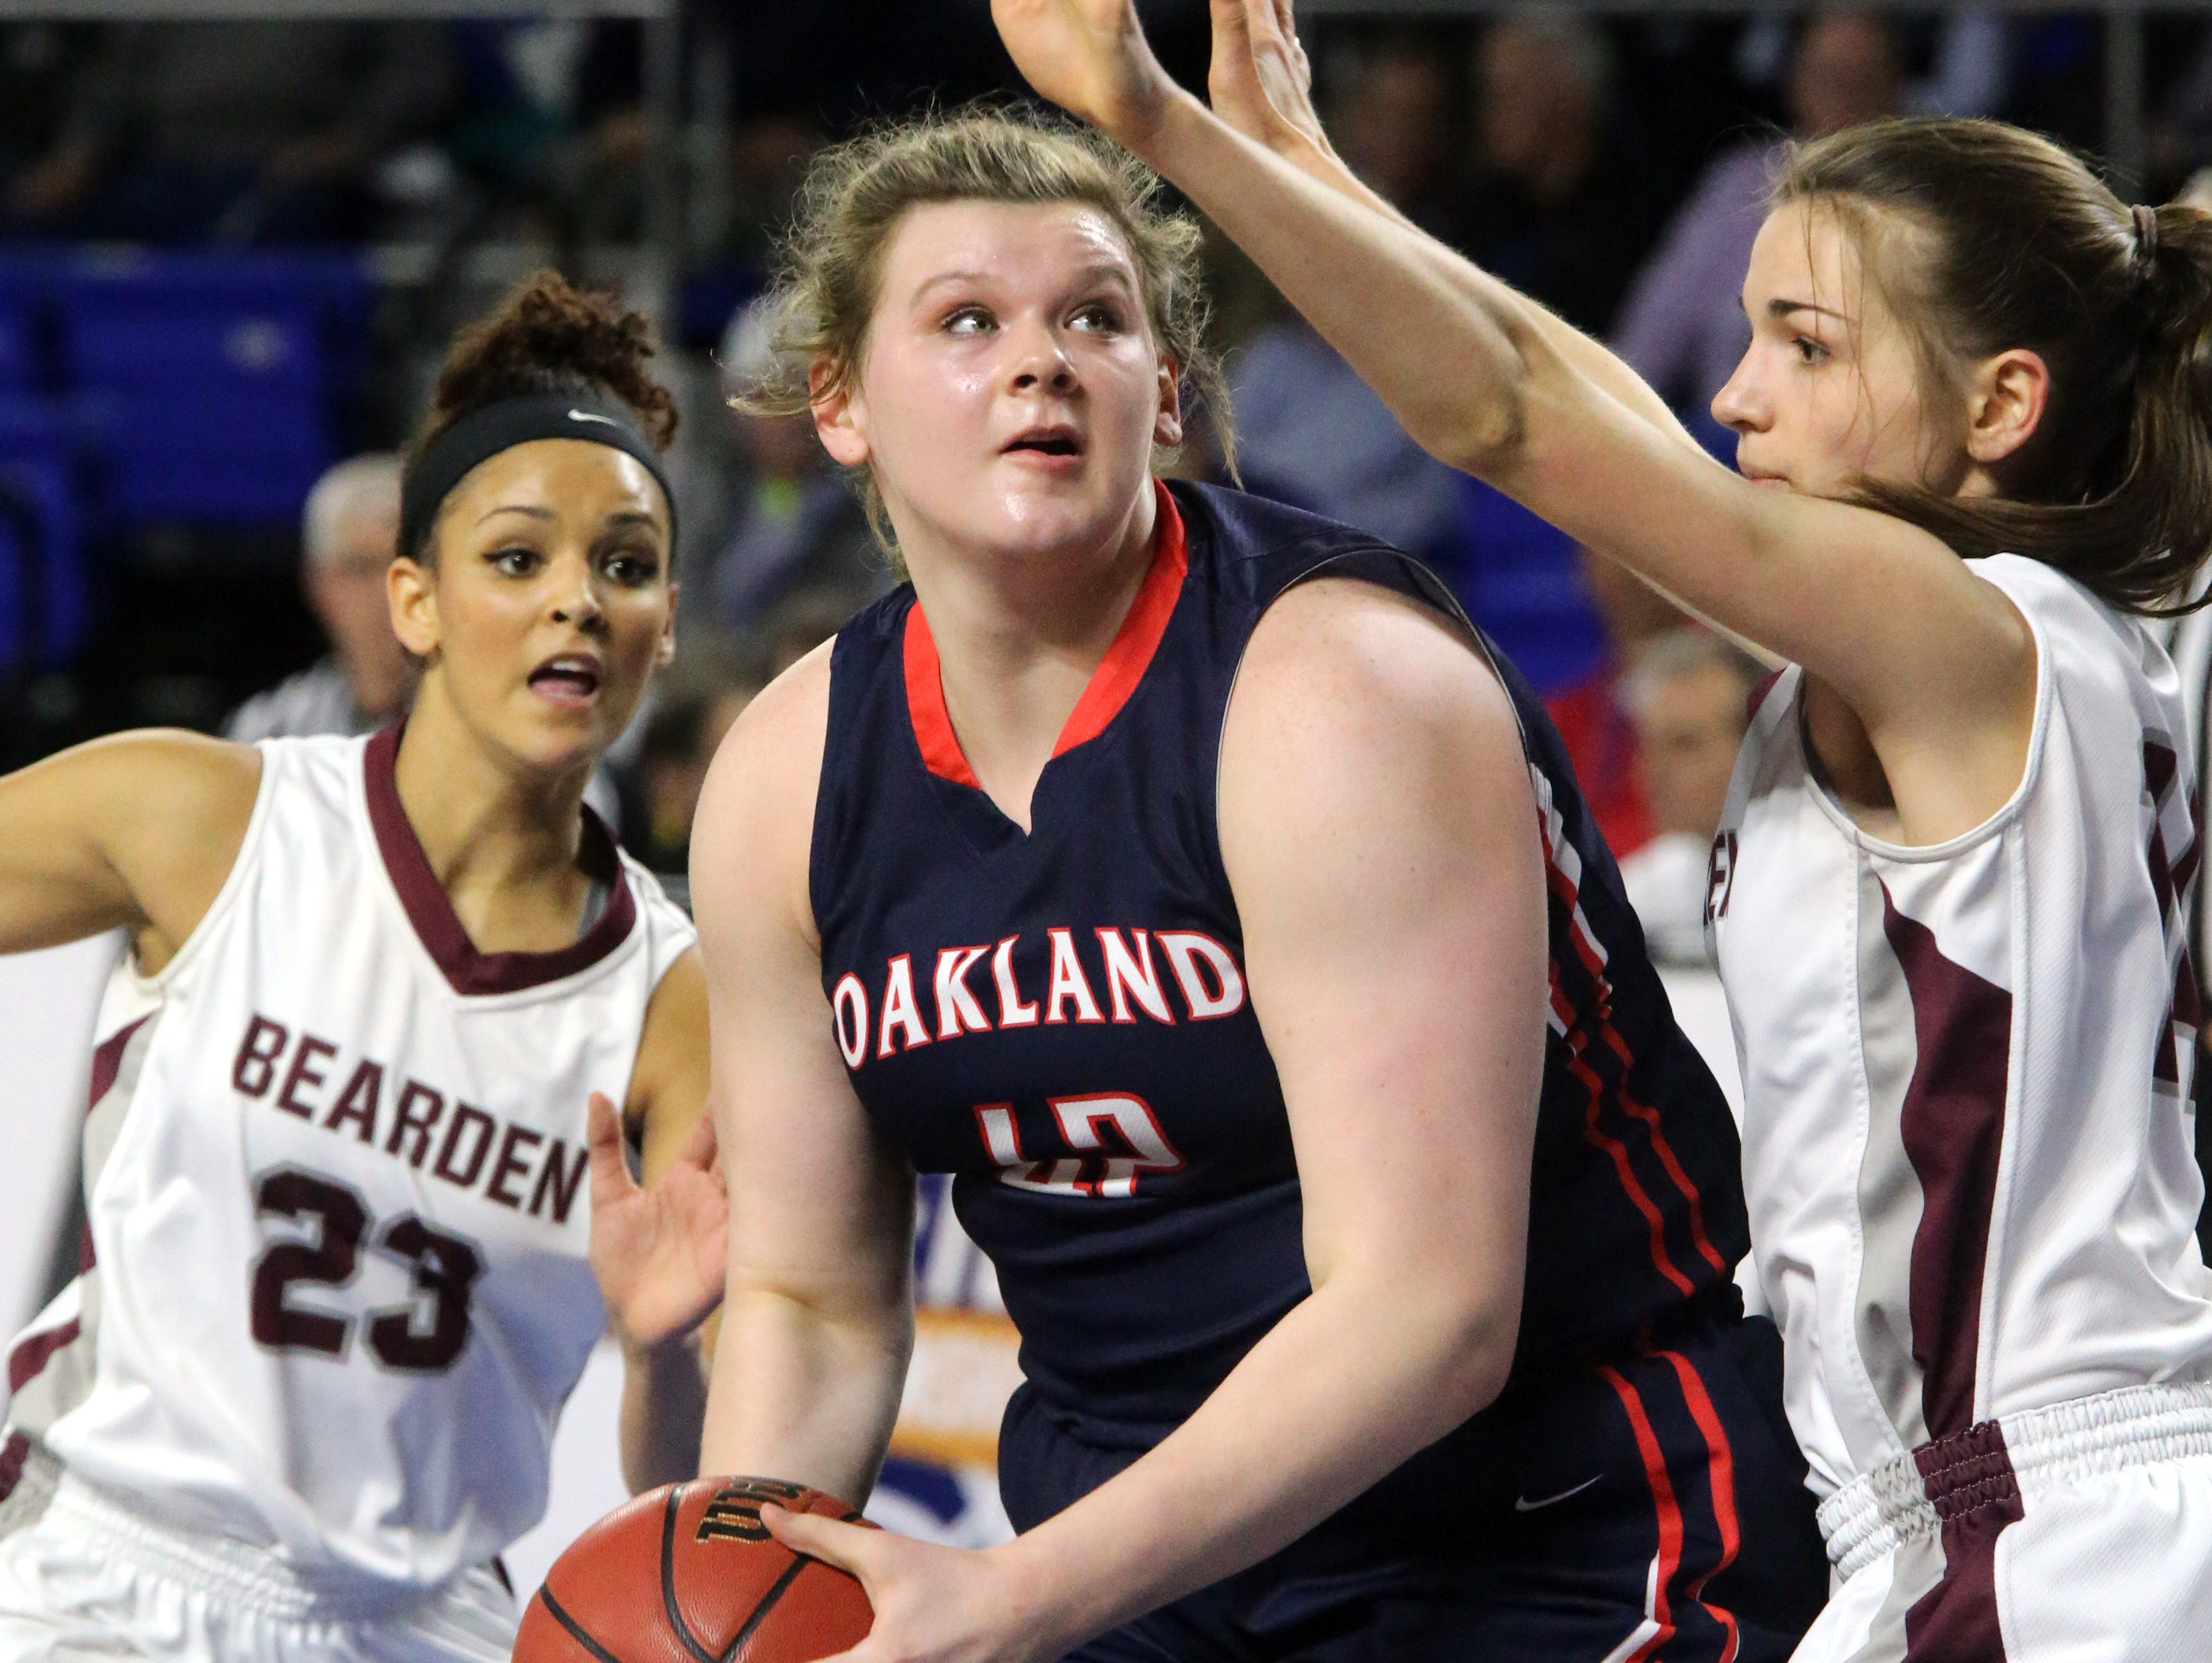 Oakland's Shelby Gibson (42) and the fifth-ranked Lady Patriots are off to a 12-1 start.